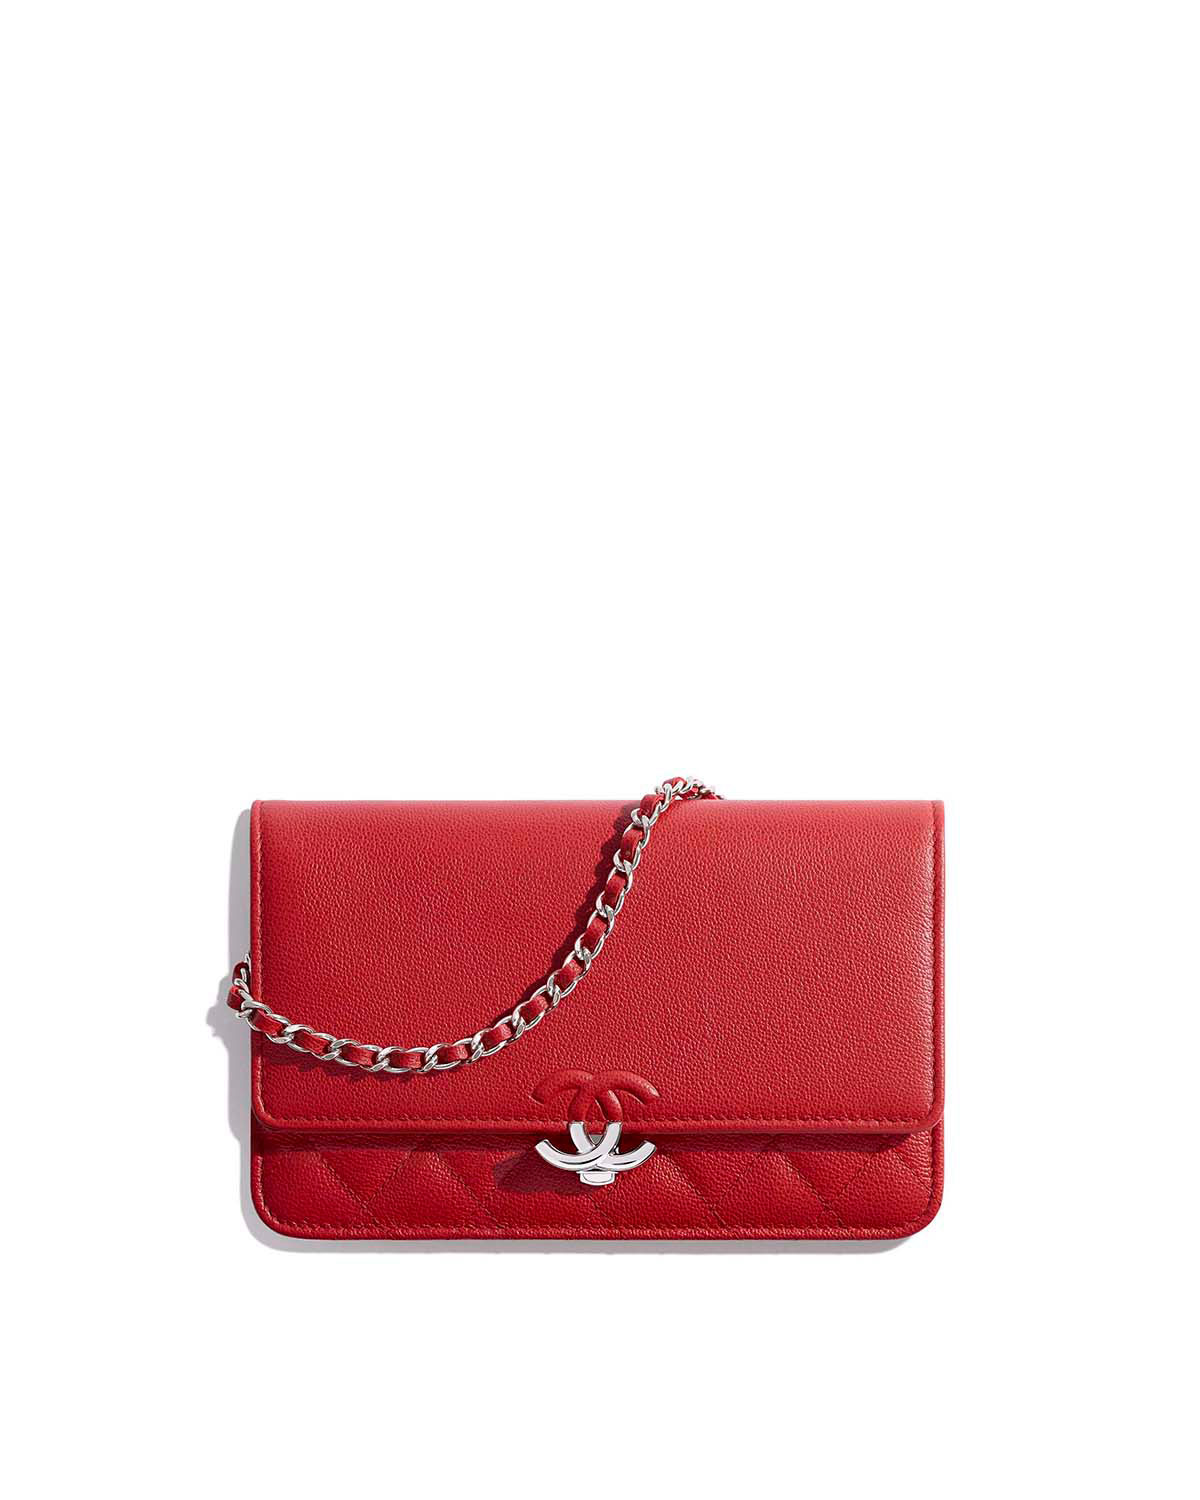 Wallet on Chain - $2,700